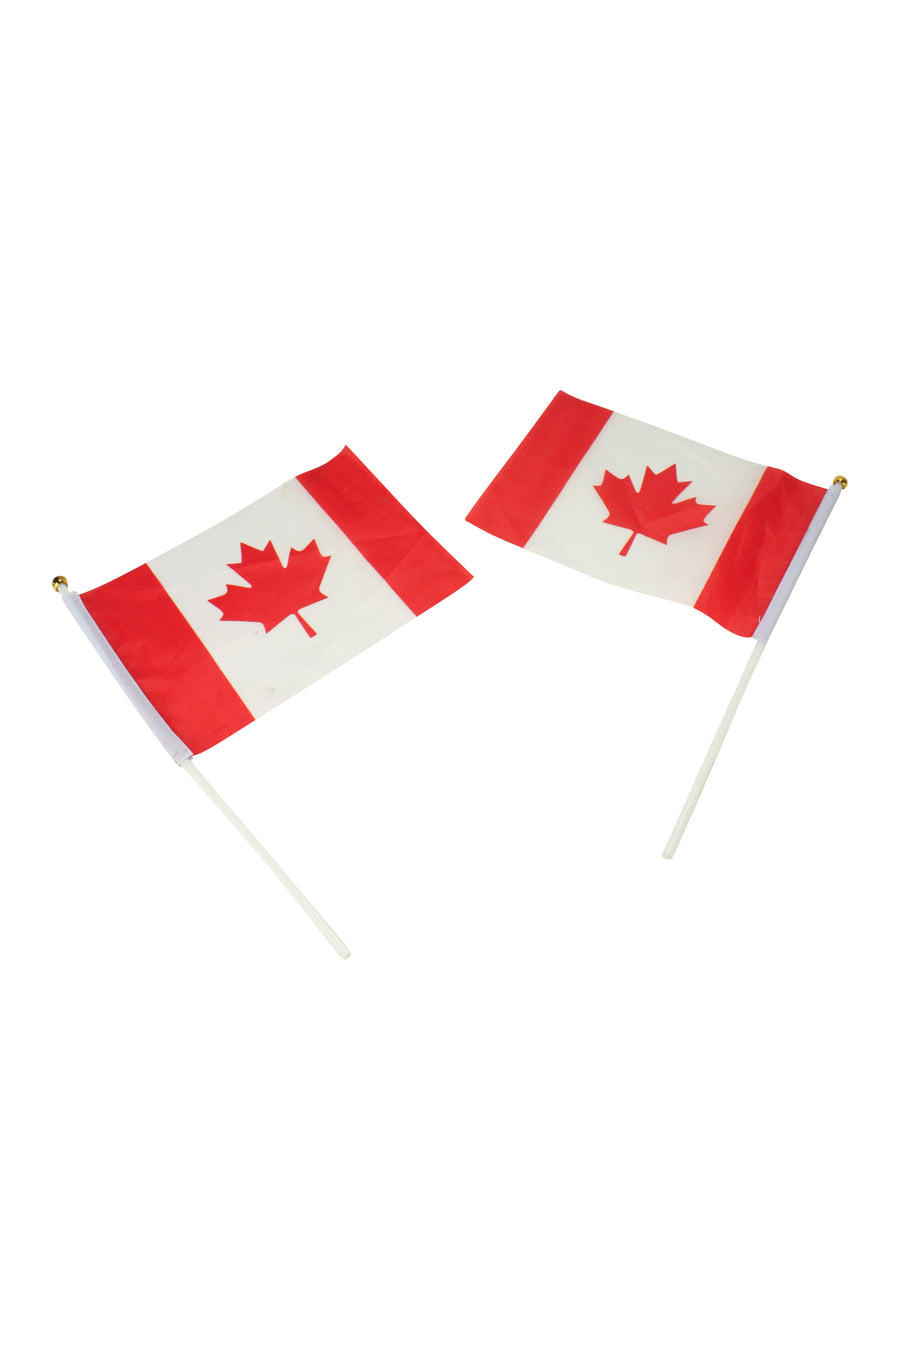 Canadian Flags (Small)